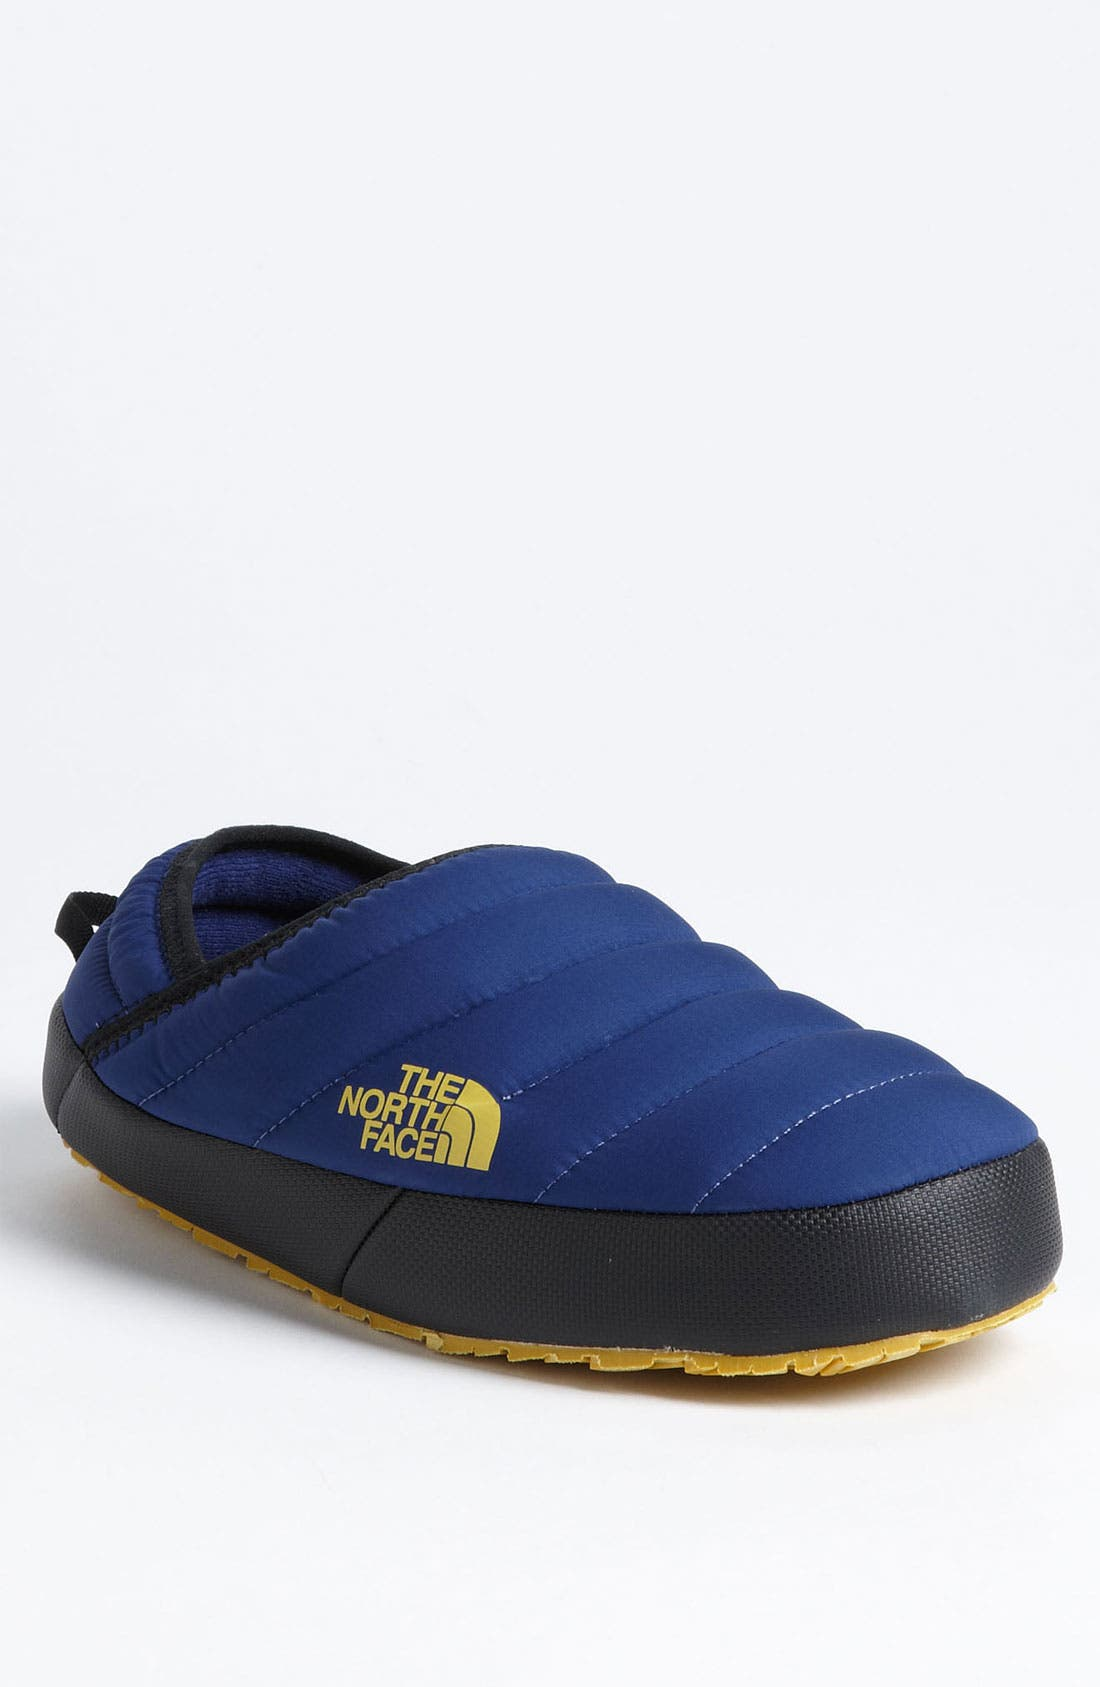 Alternate Image 1 Selected - The North Face Traction Mule Slipper